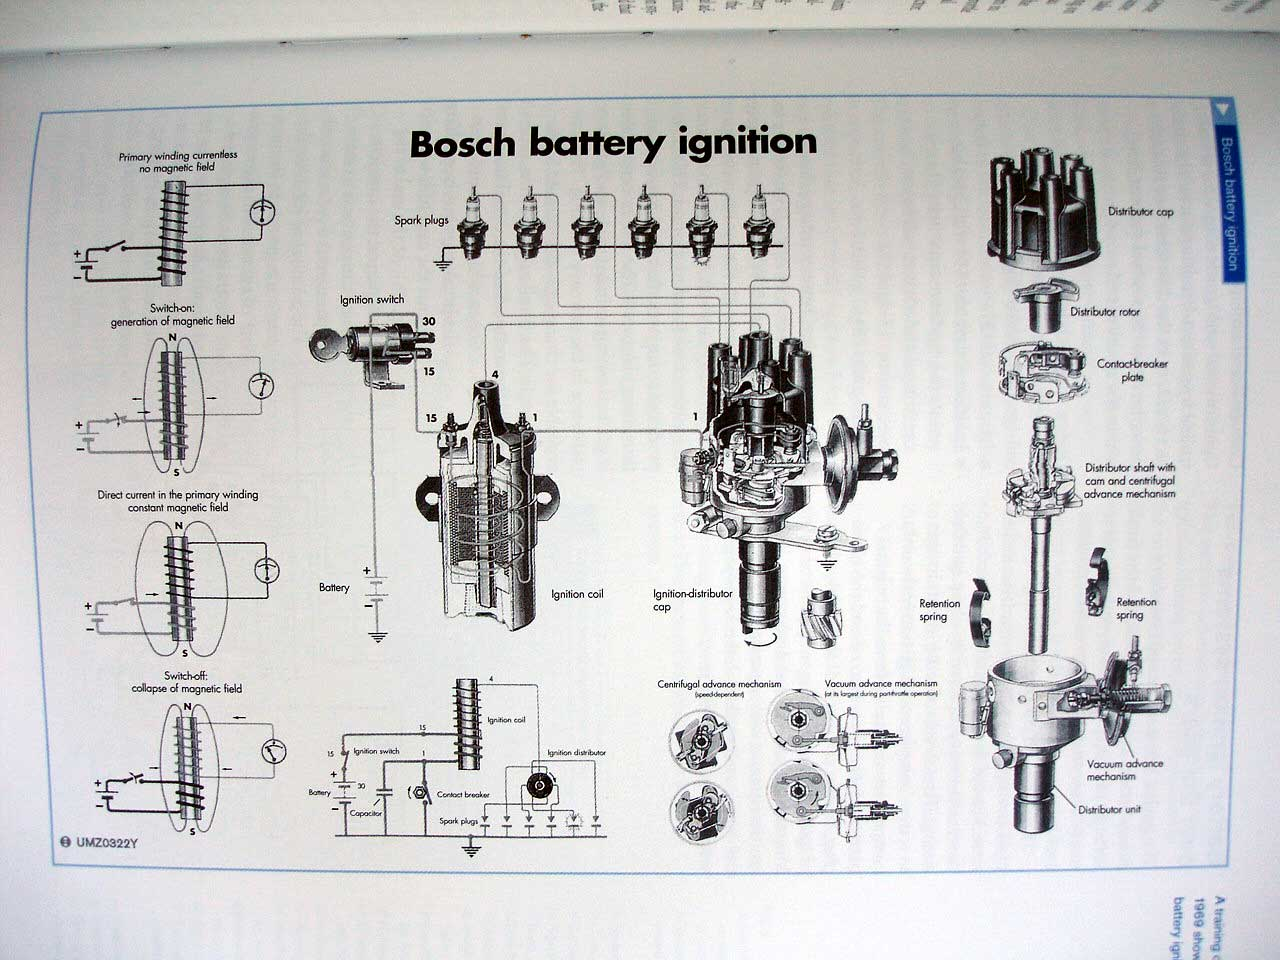 BoschBatteryIgnition understanding the ignition system electronic ignition system diagram at nearapp.co